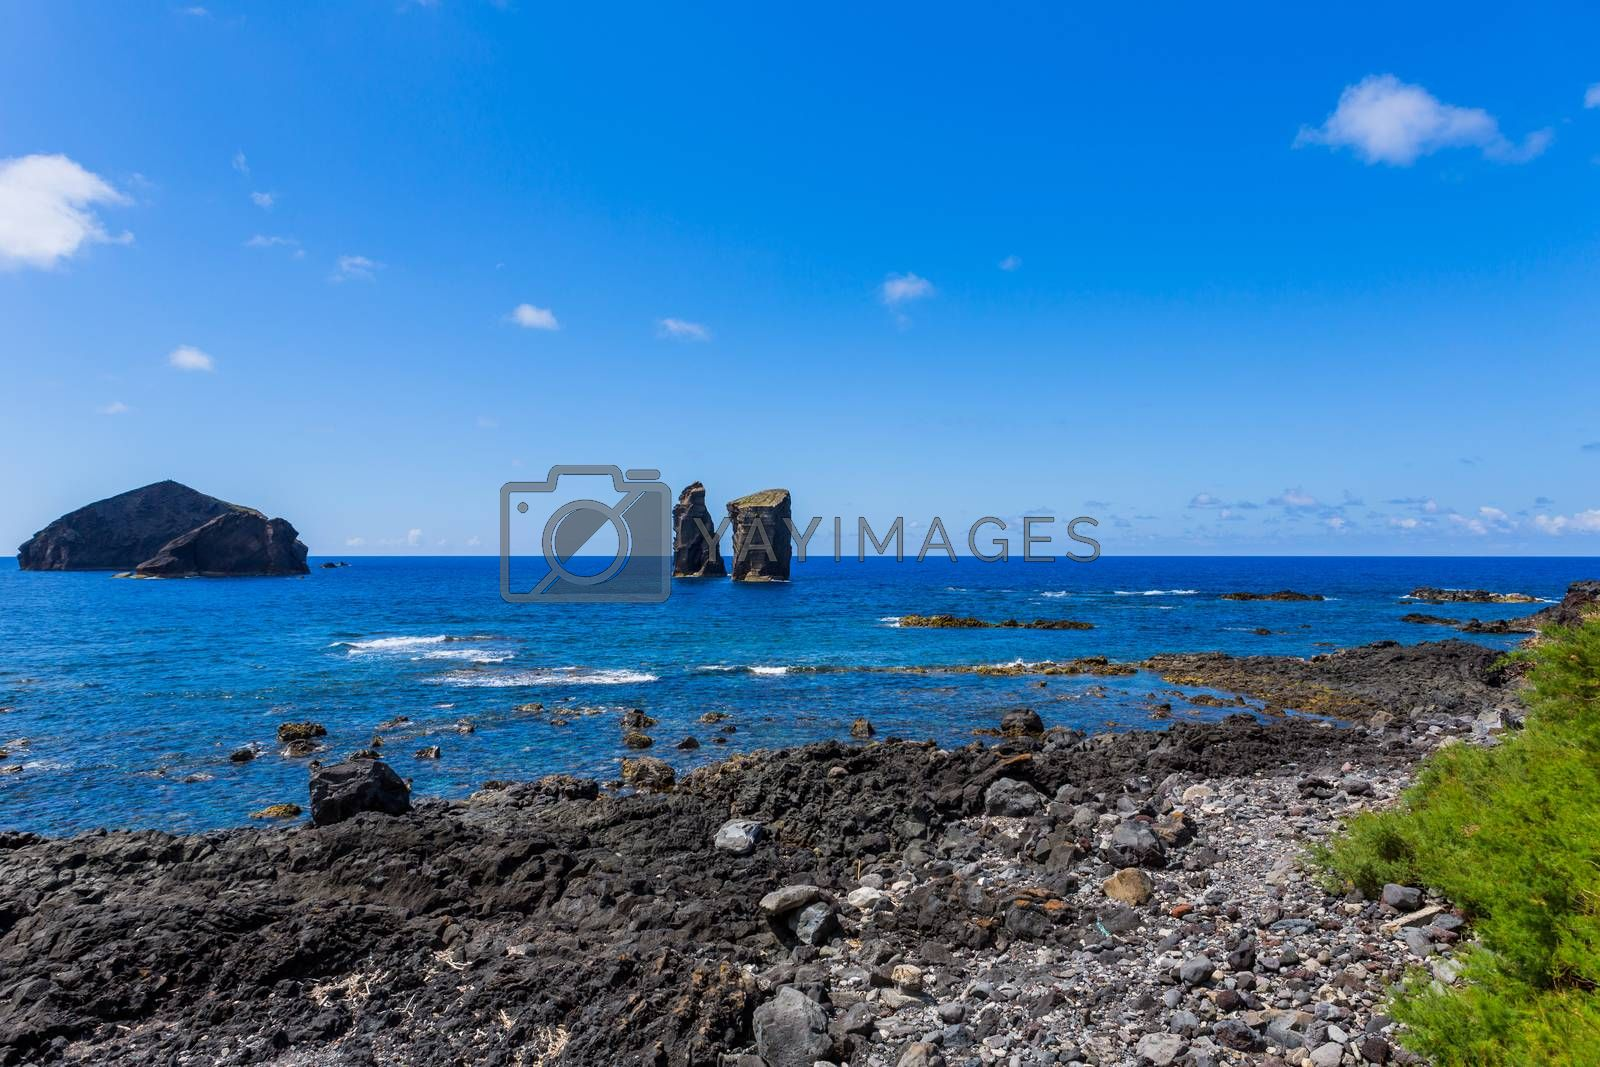 Royalty free image of Mosteiros on the island of Sao Miguel by zittto